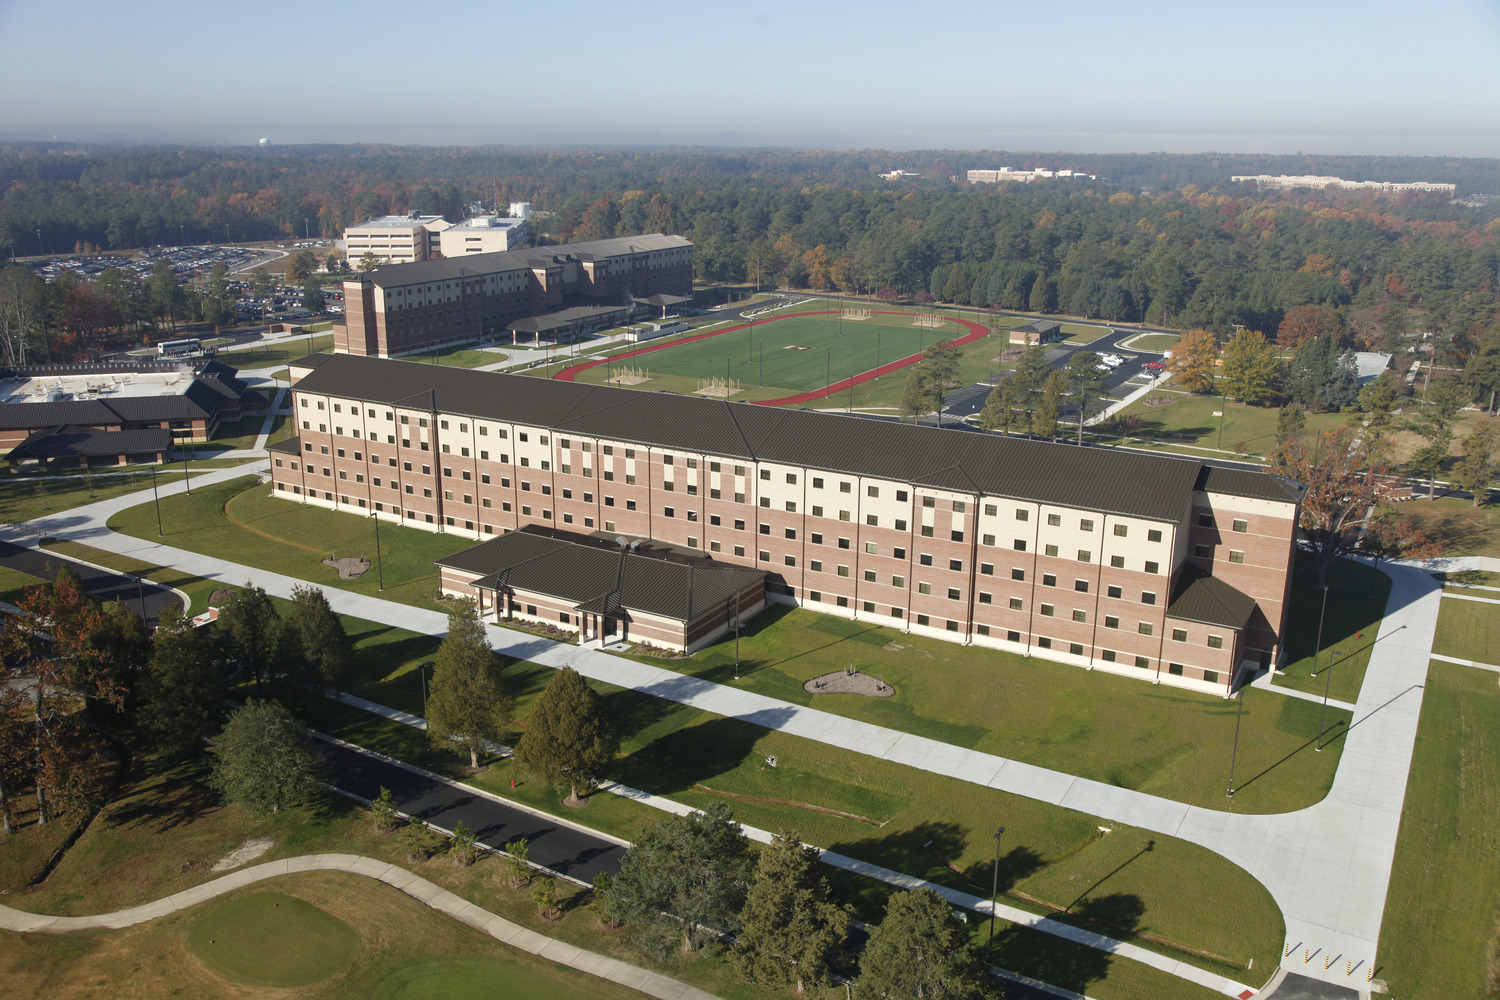 CBG builds Fort Lee AIT Barracks, a 600-Unit Advanced Individual Training Facility and Residential Complex in Fort Lee, VA - Image #10